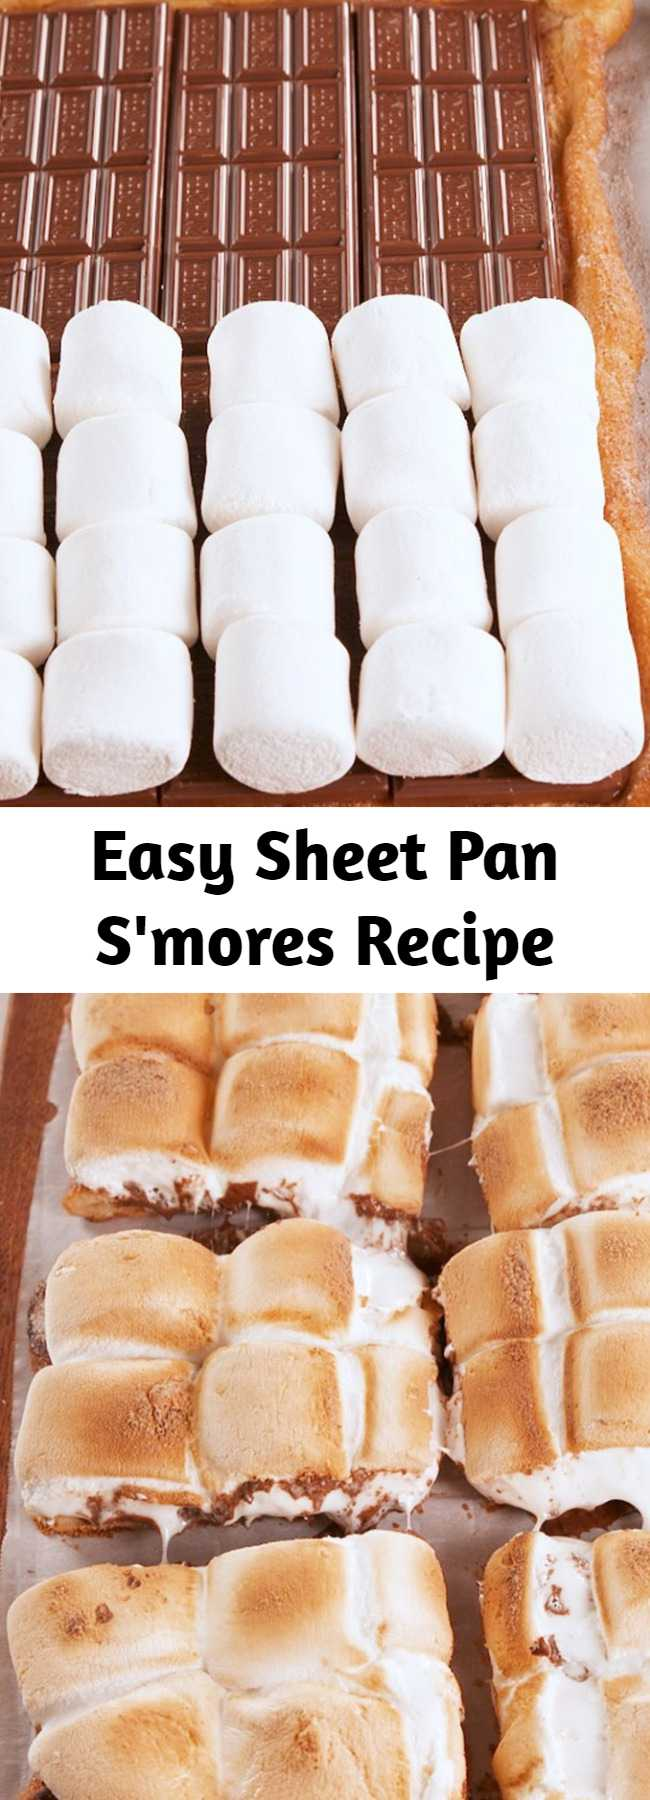 Easy Sheet Pan S'mores Recipe - The only problem we had with s'mores is that we couldn't eat them 365 days a year. Enter: Sheet Pan S'mores. S'mores all day, everyday. It's the best way to serve s'mores to a crowd, too. #easy #recipe #sheetpansmores #smores #summerrecipes #summerdessert #summerparty #memorialdaydessert #fourthofjuly